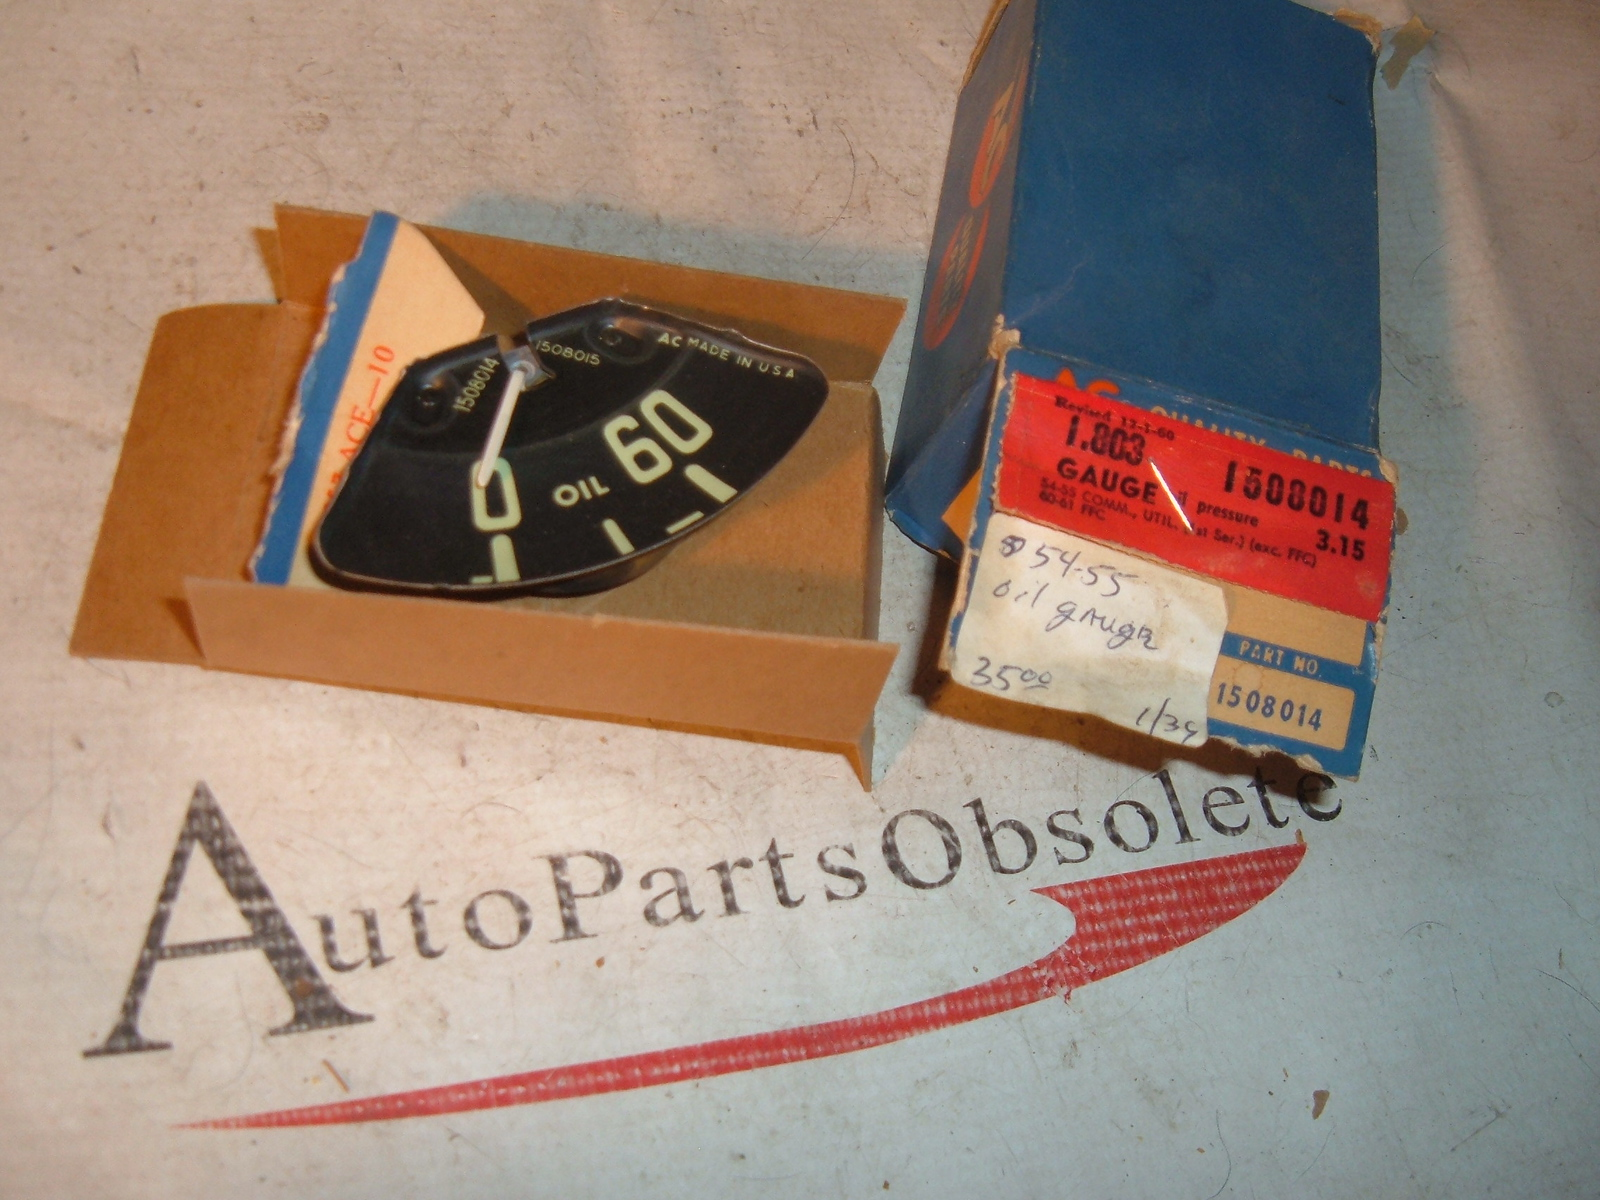 View Product1954 1955 chevrolet truck oil pressure gauge dash unit nos gm # 1508014 (z 1508014)